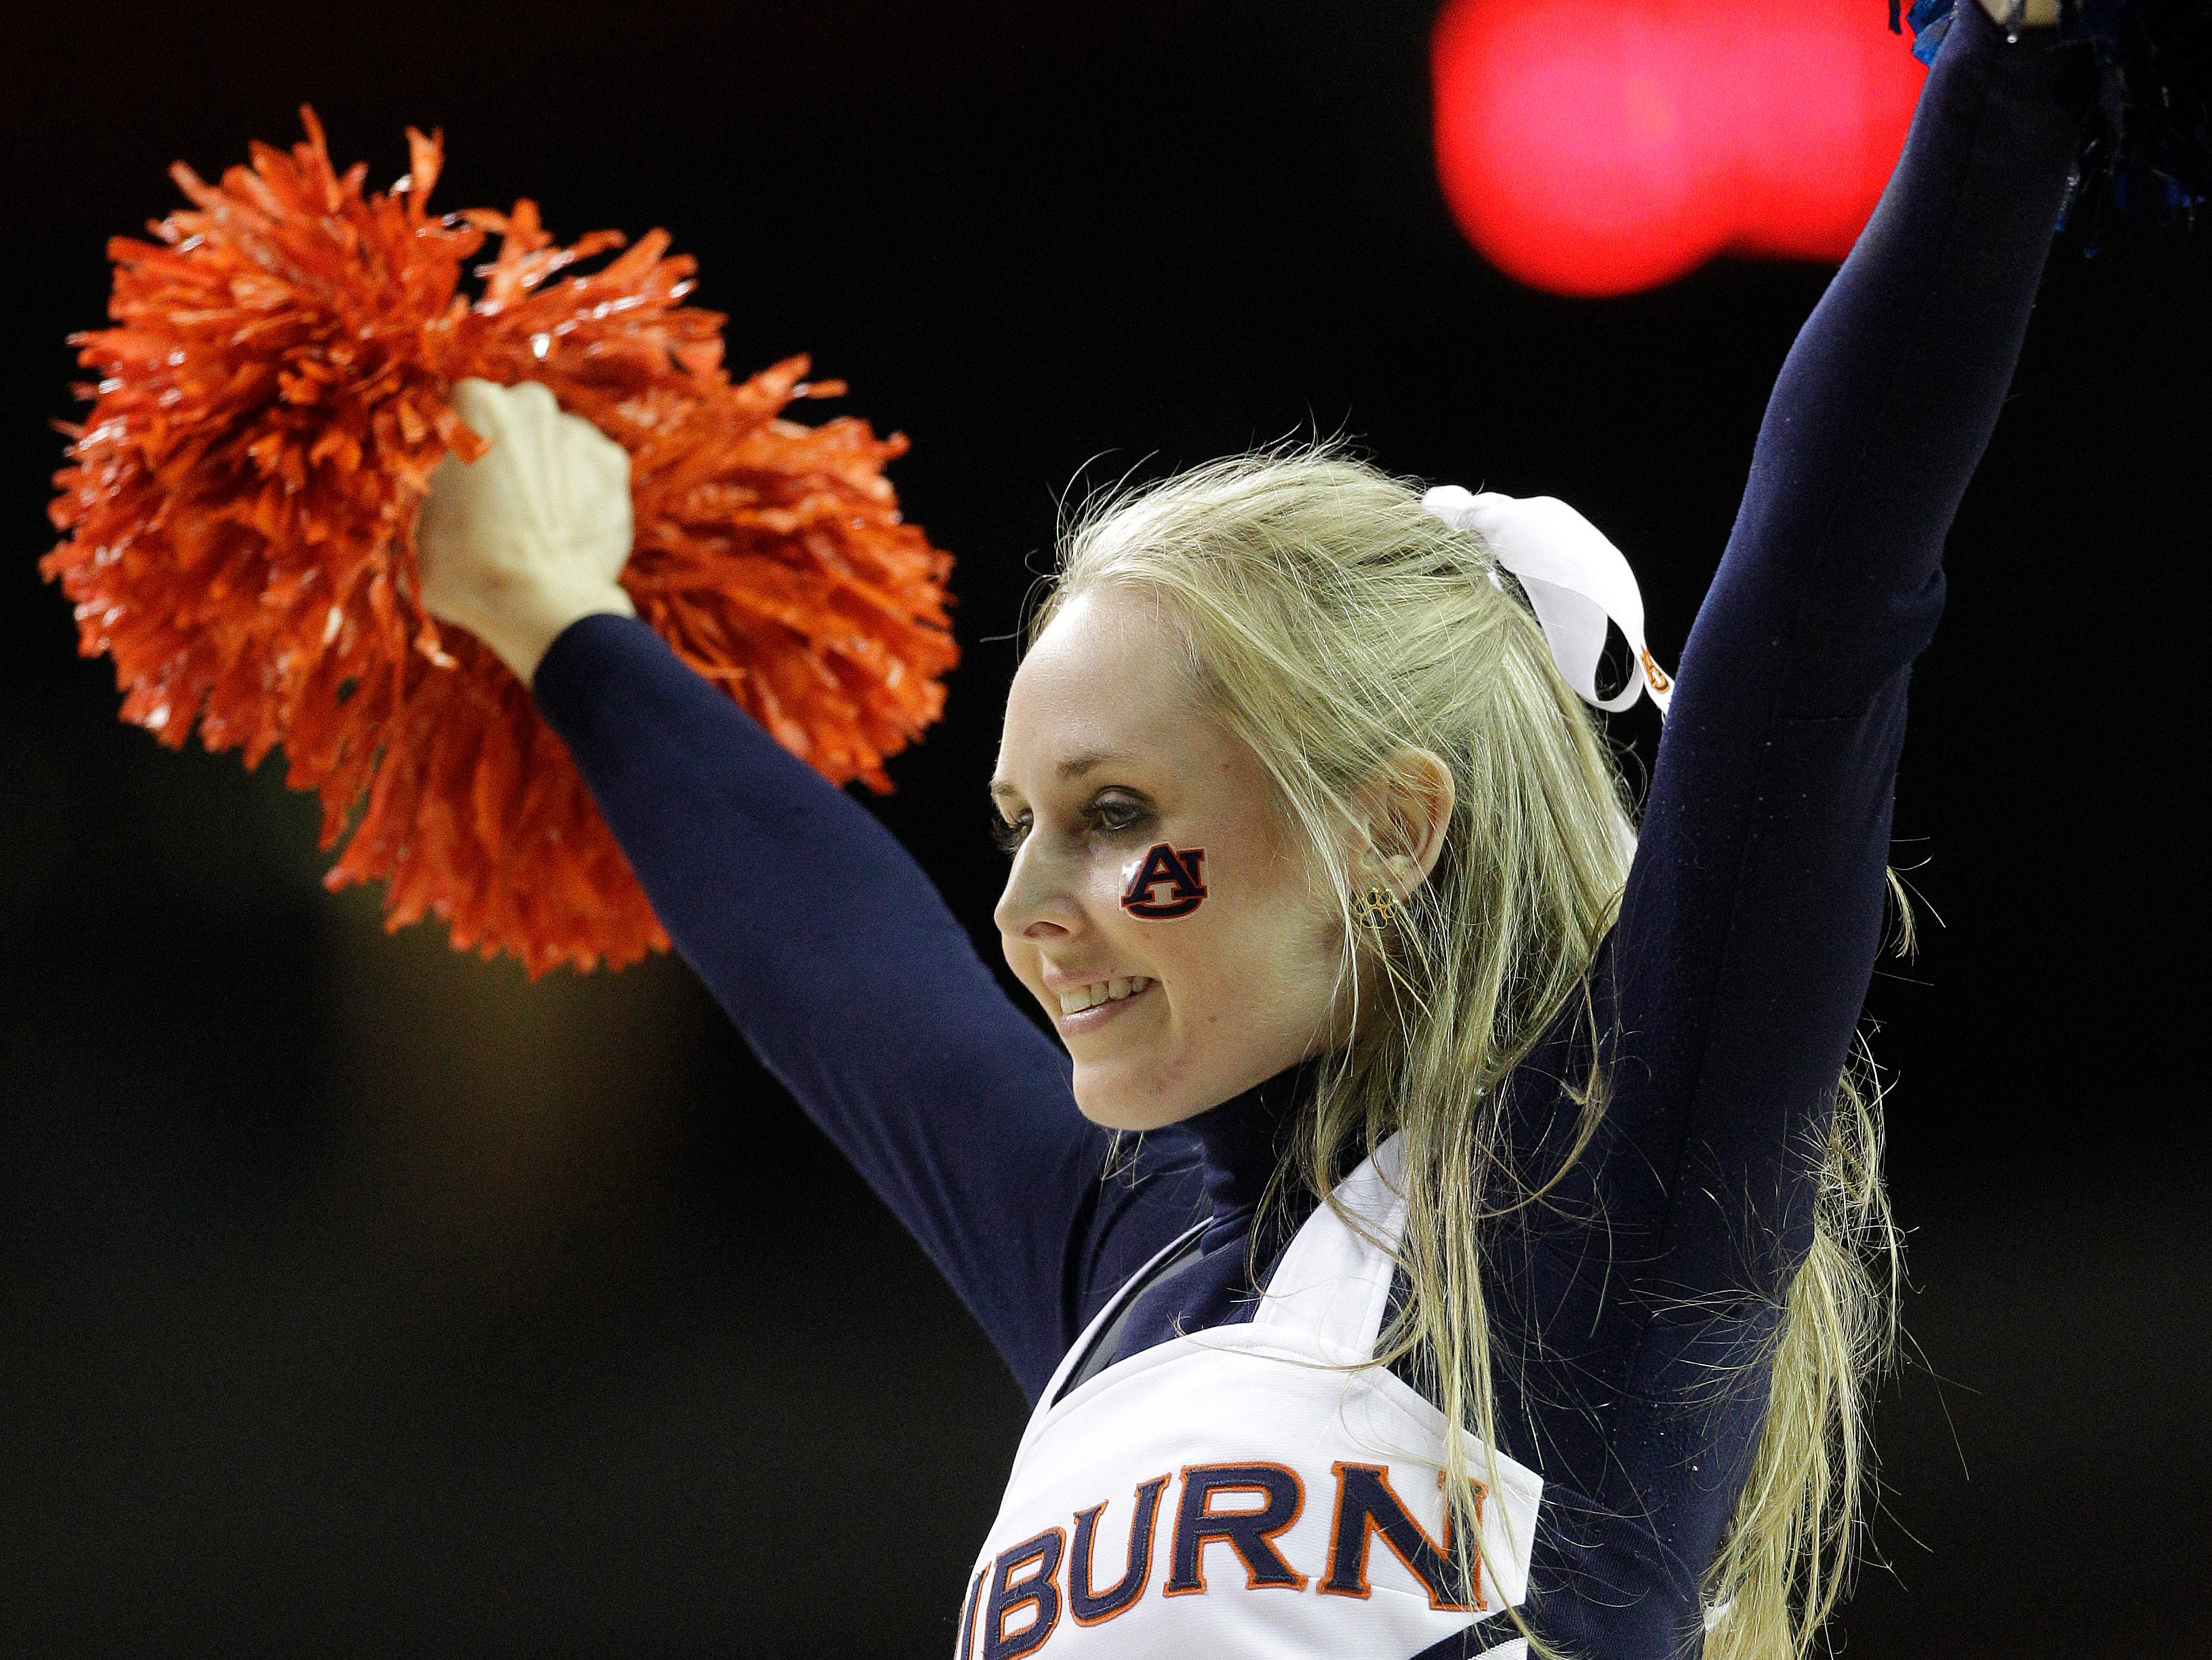 Auburn cheerleaders perform during the first half in a first round Southeastern Conference tournament game against South Carolina, Wednesday, March 12, 2014, in Atlanta.  (AP Photo/Steve Helber)